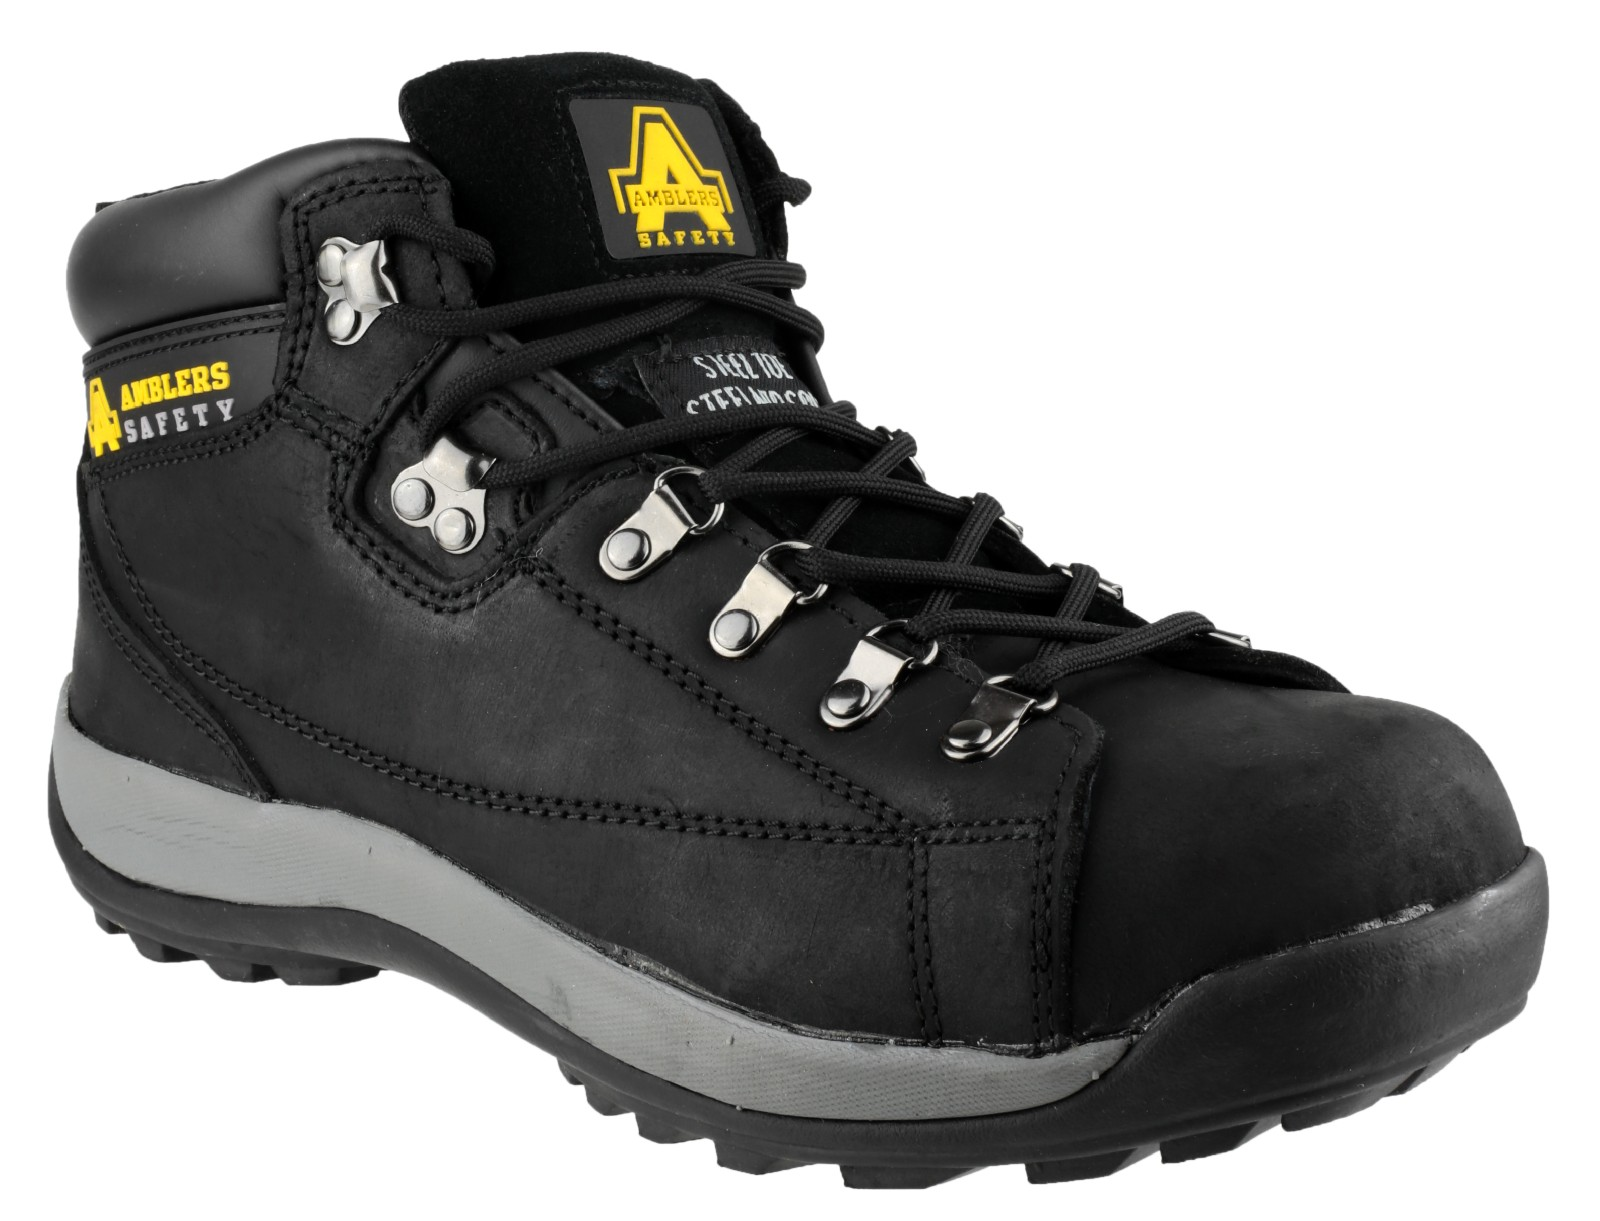 Amblers Safety FS123 Black - Chaussures Boot